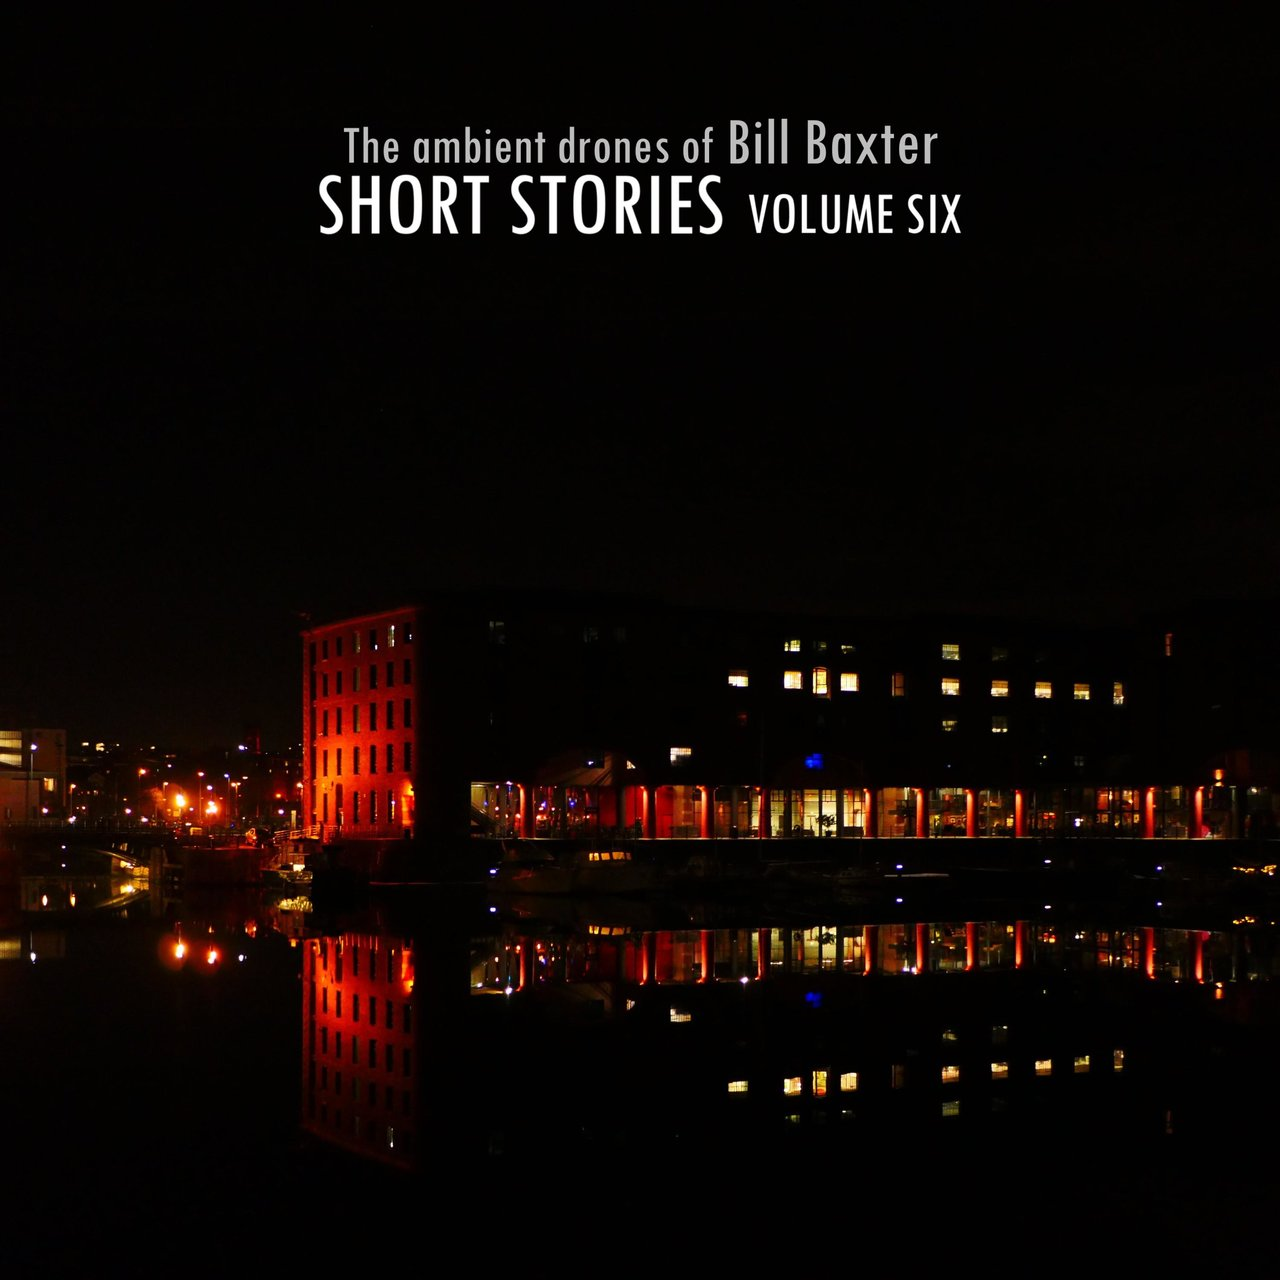 Short Stories Volume Six